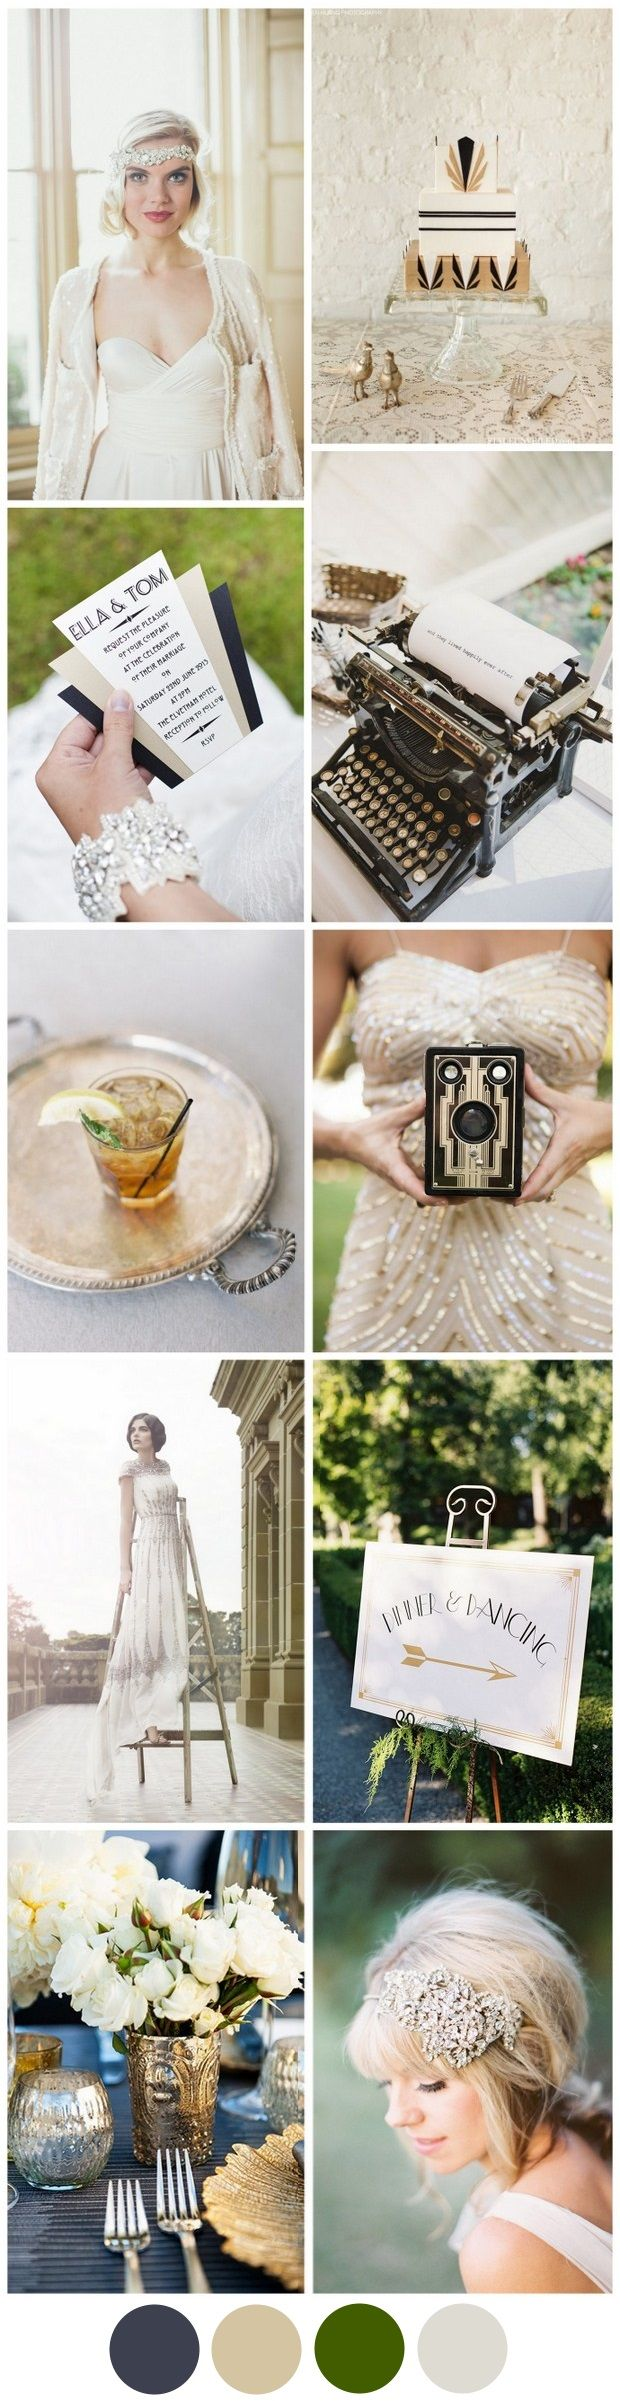 Channeling The Great Gatsby Your Art Deco Wedding Theme